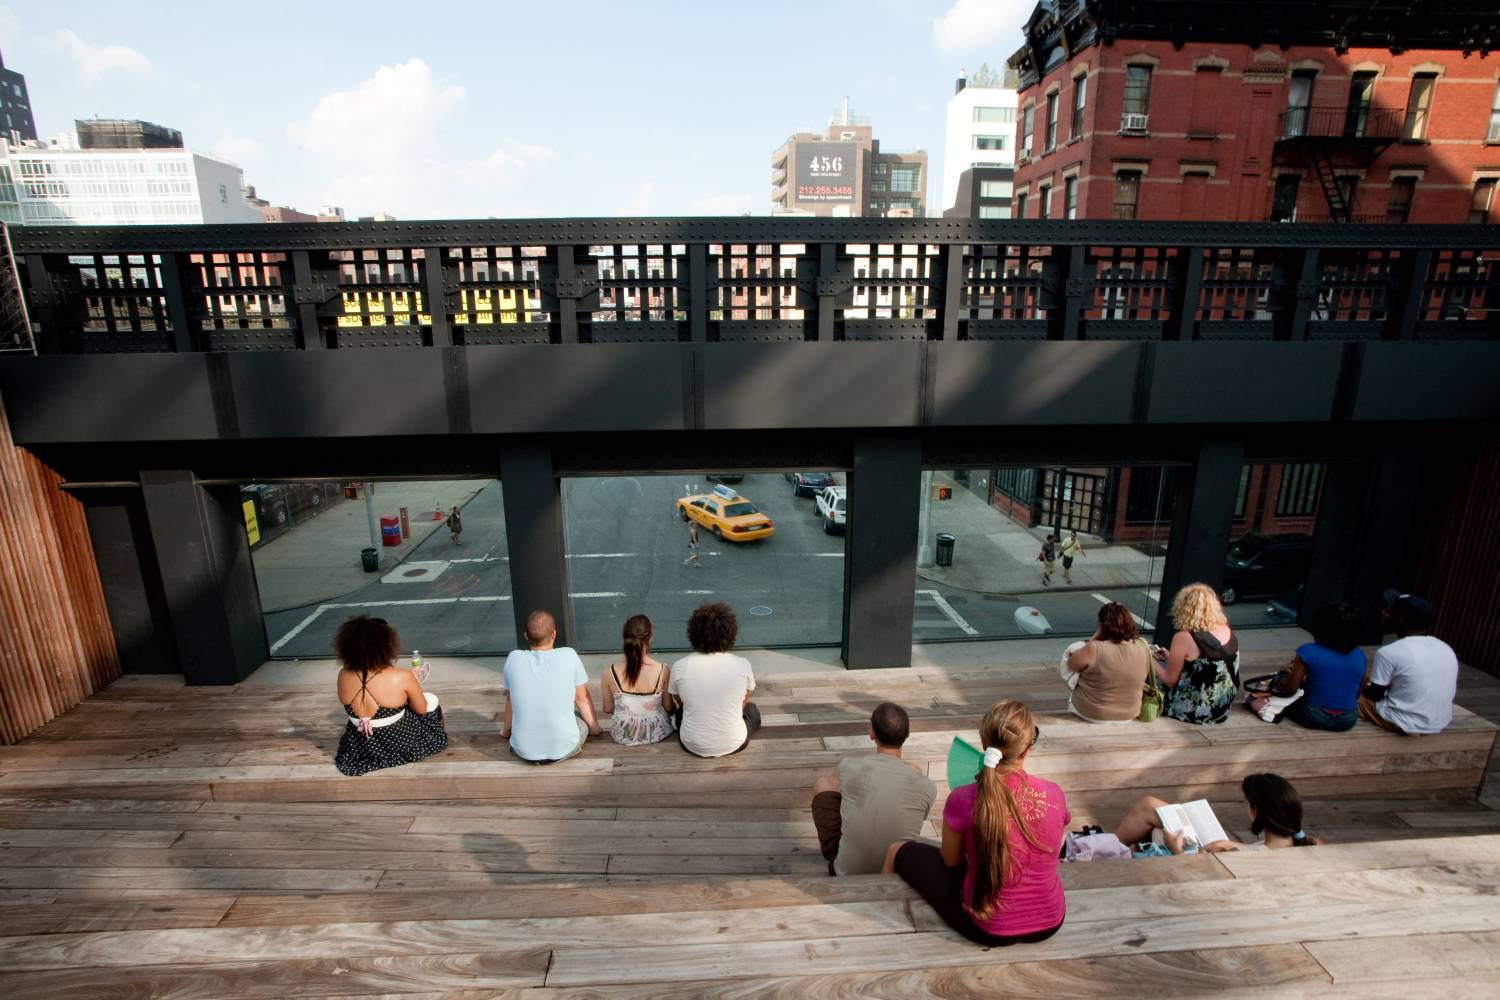 People sitting on the High Line